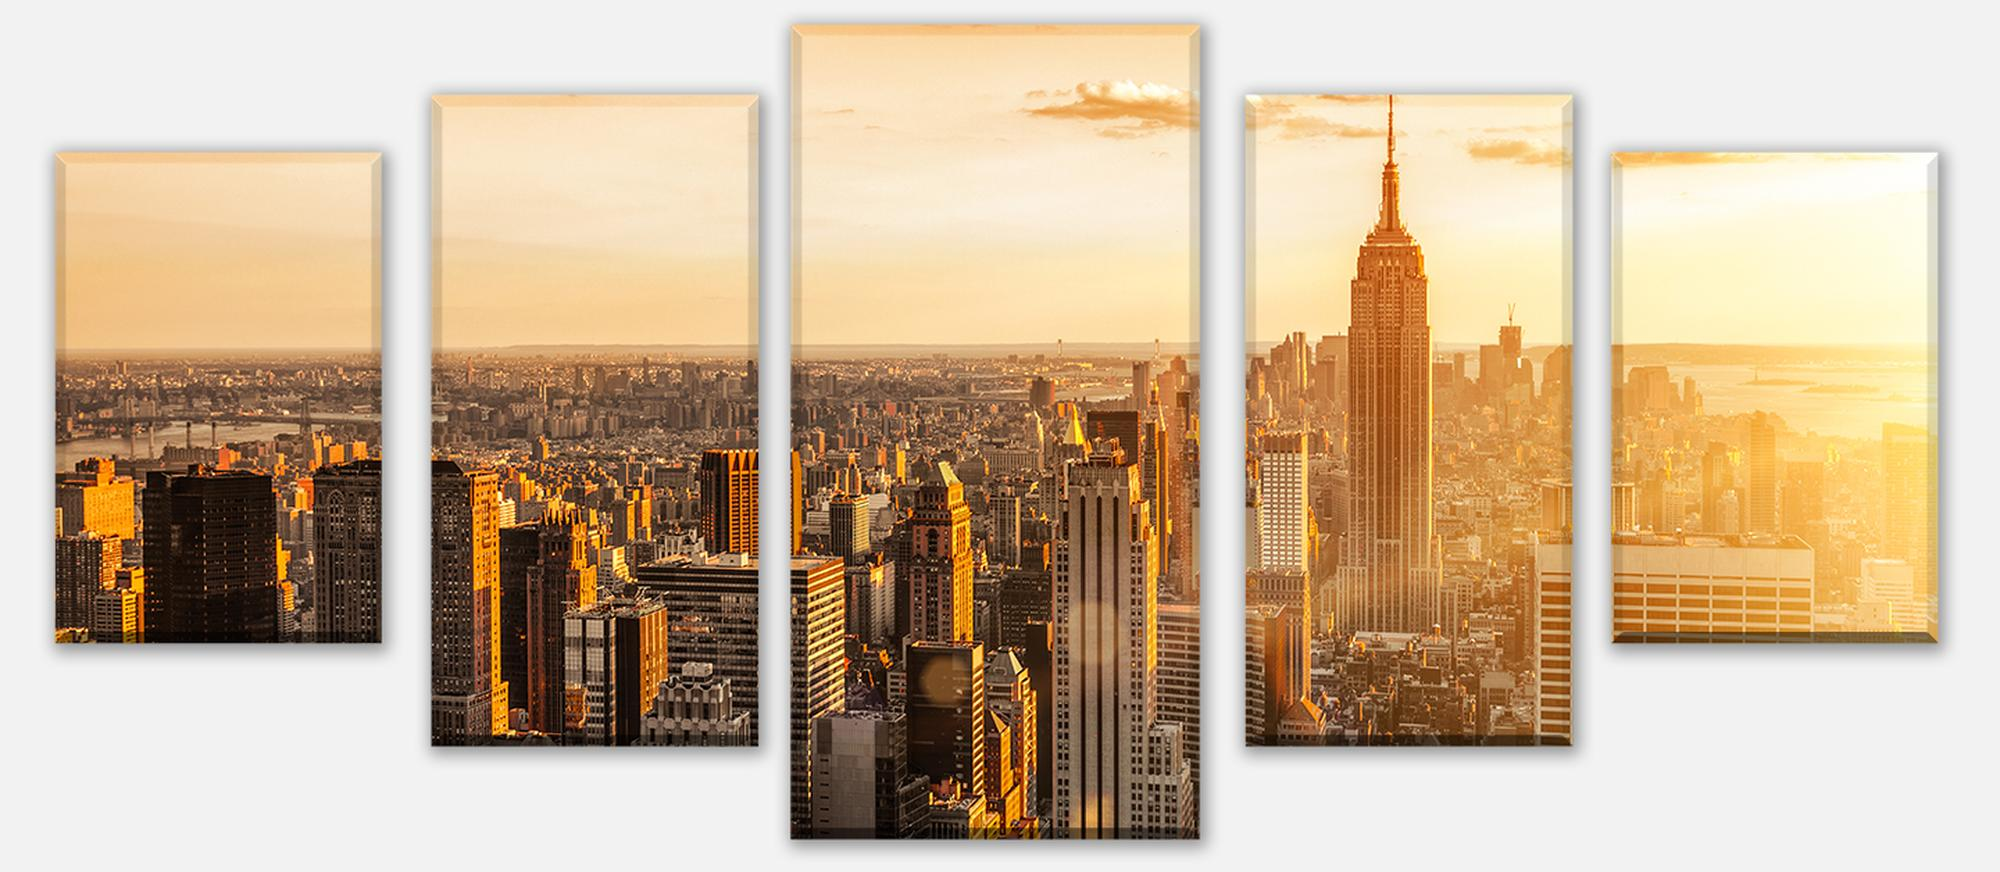 wandmotiv24 leinwandbild mehrteilig new york m0444 st dte fototapeten g nstig kaufen. Black Bedroom Furniture Sets. Home Design Ideas